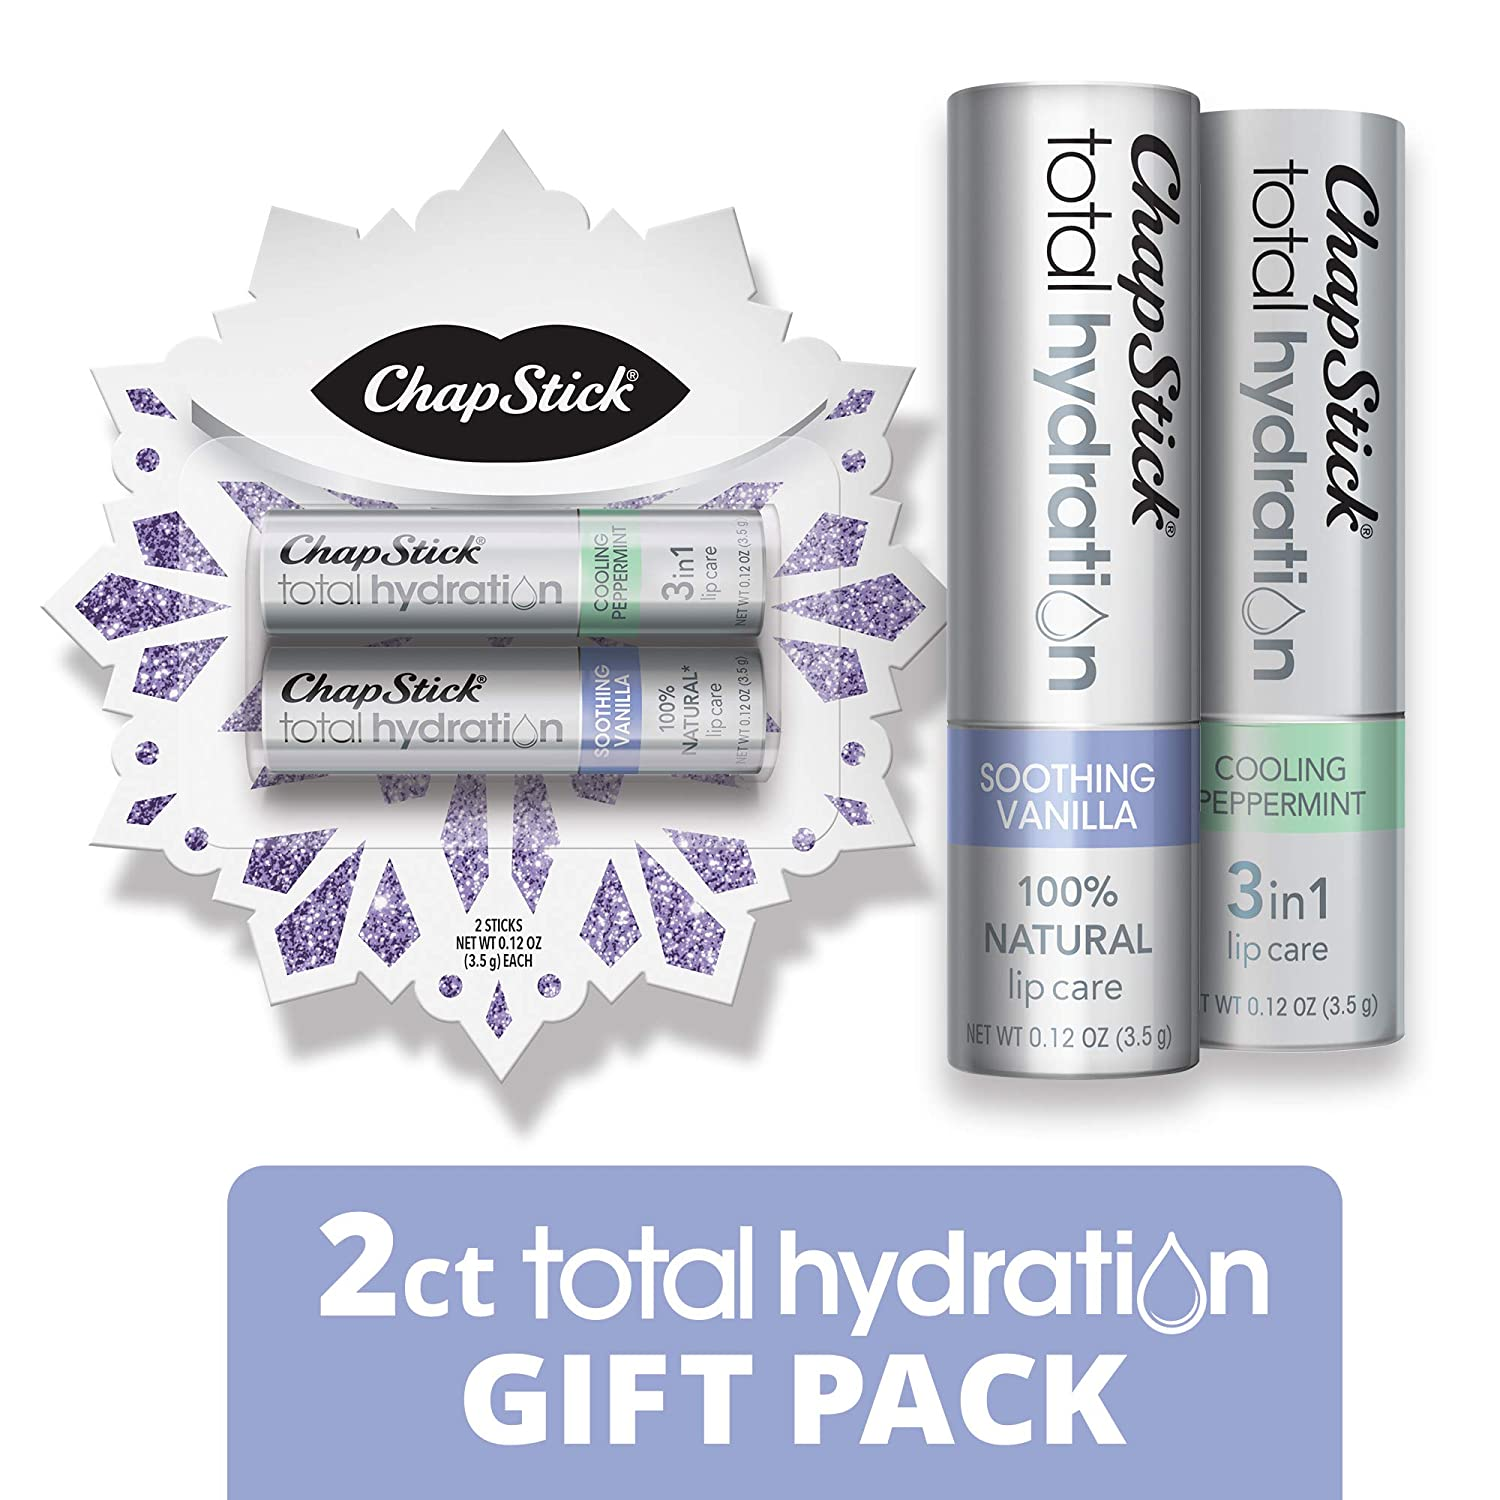 ChapStick Total Hydration Lip Balm Holiday Snowflake Gift Pack (Soothing Vanilla, Cooling Peppermint, 0.15 Ounce, 2 Sticks), Lip Care, Moisturizer and Therapy, Skin Protectant, Stocking Stuffer